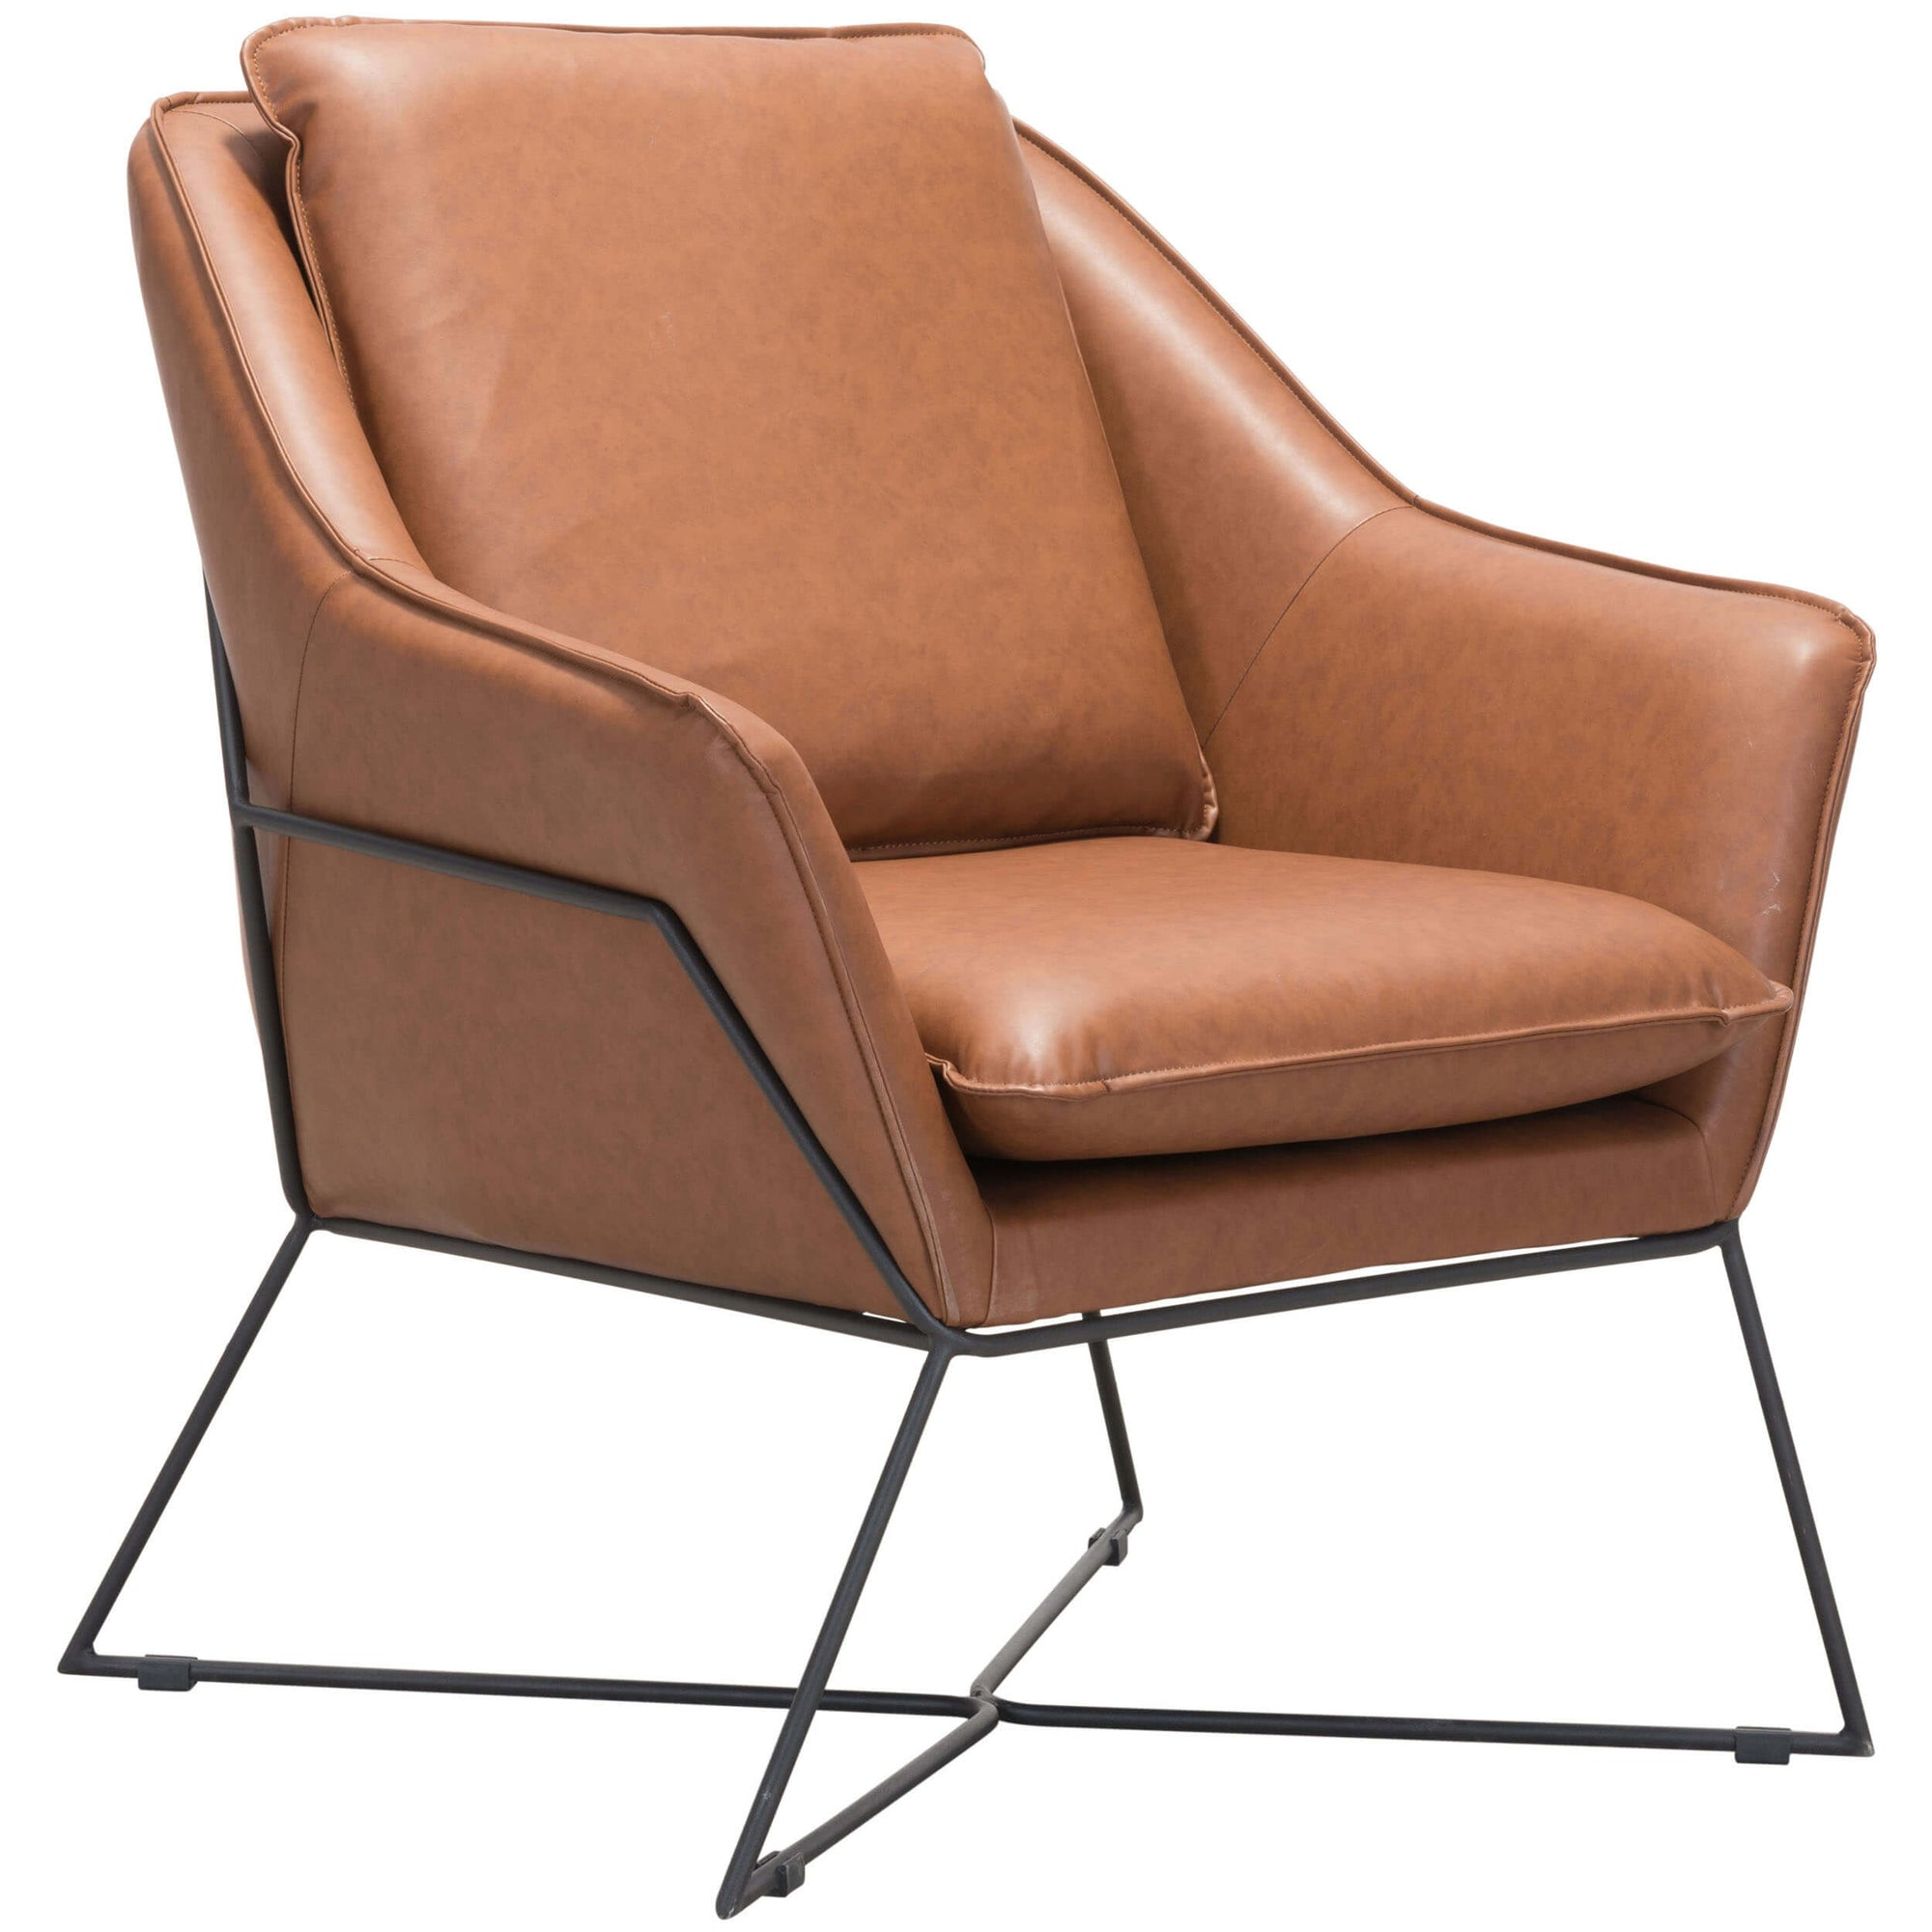 Awesome Lincoln Lounge Chair Saddle High Fashion Home Dailytribune Chair Design For Home Dailytribuneorg